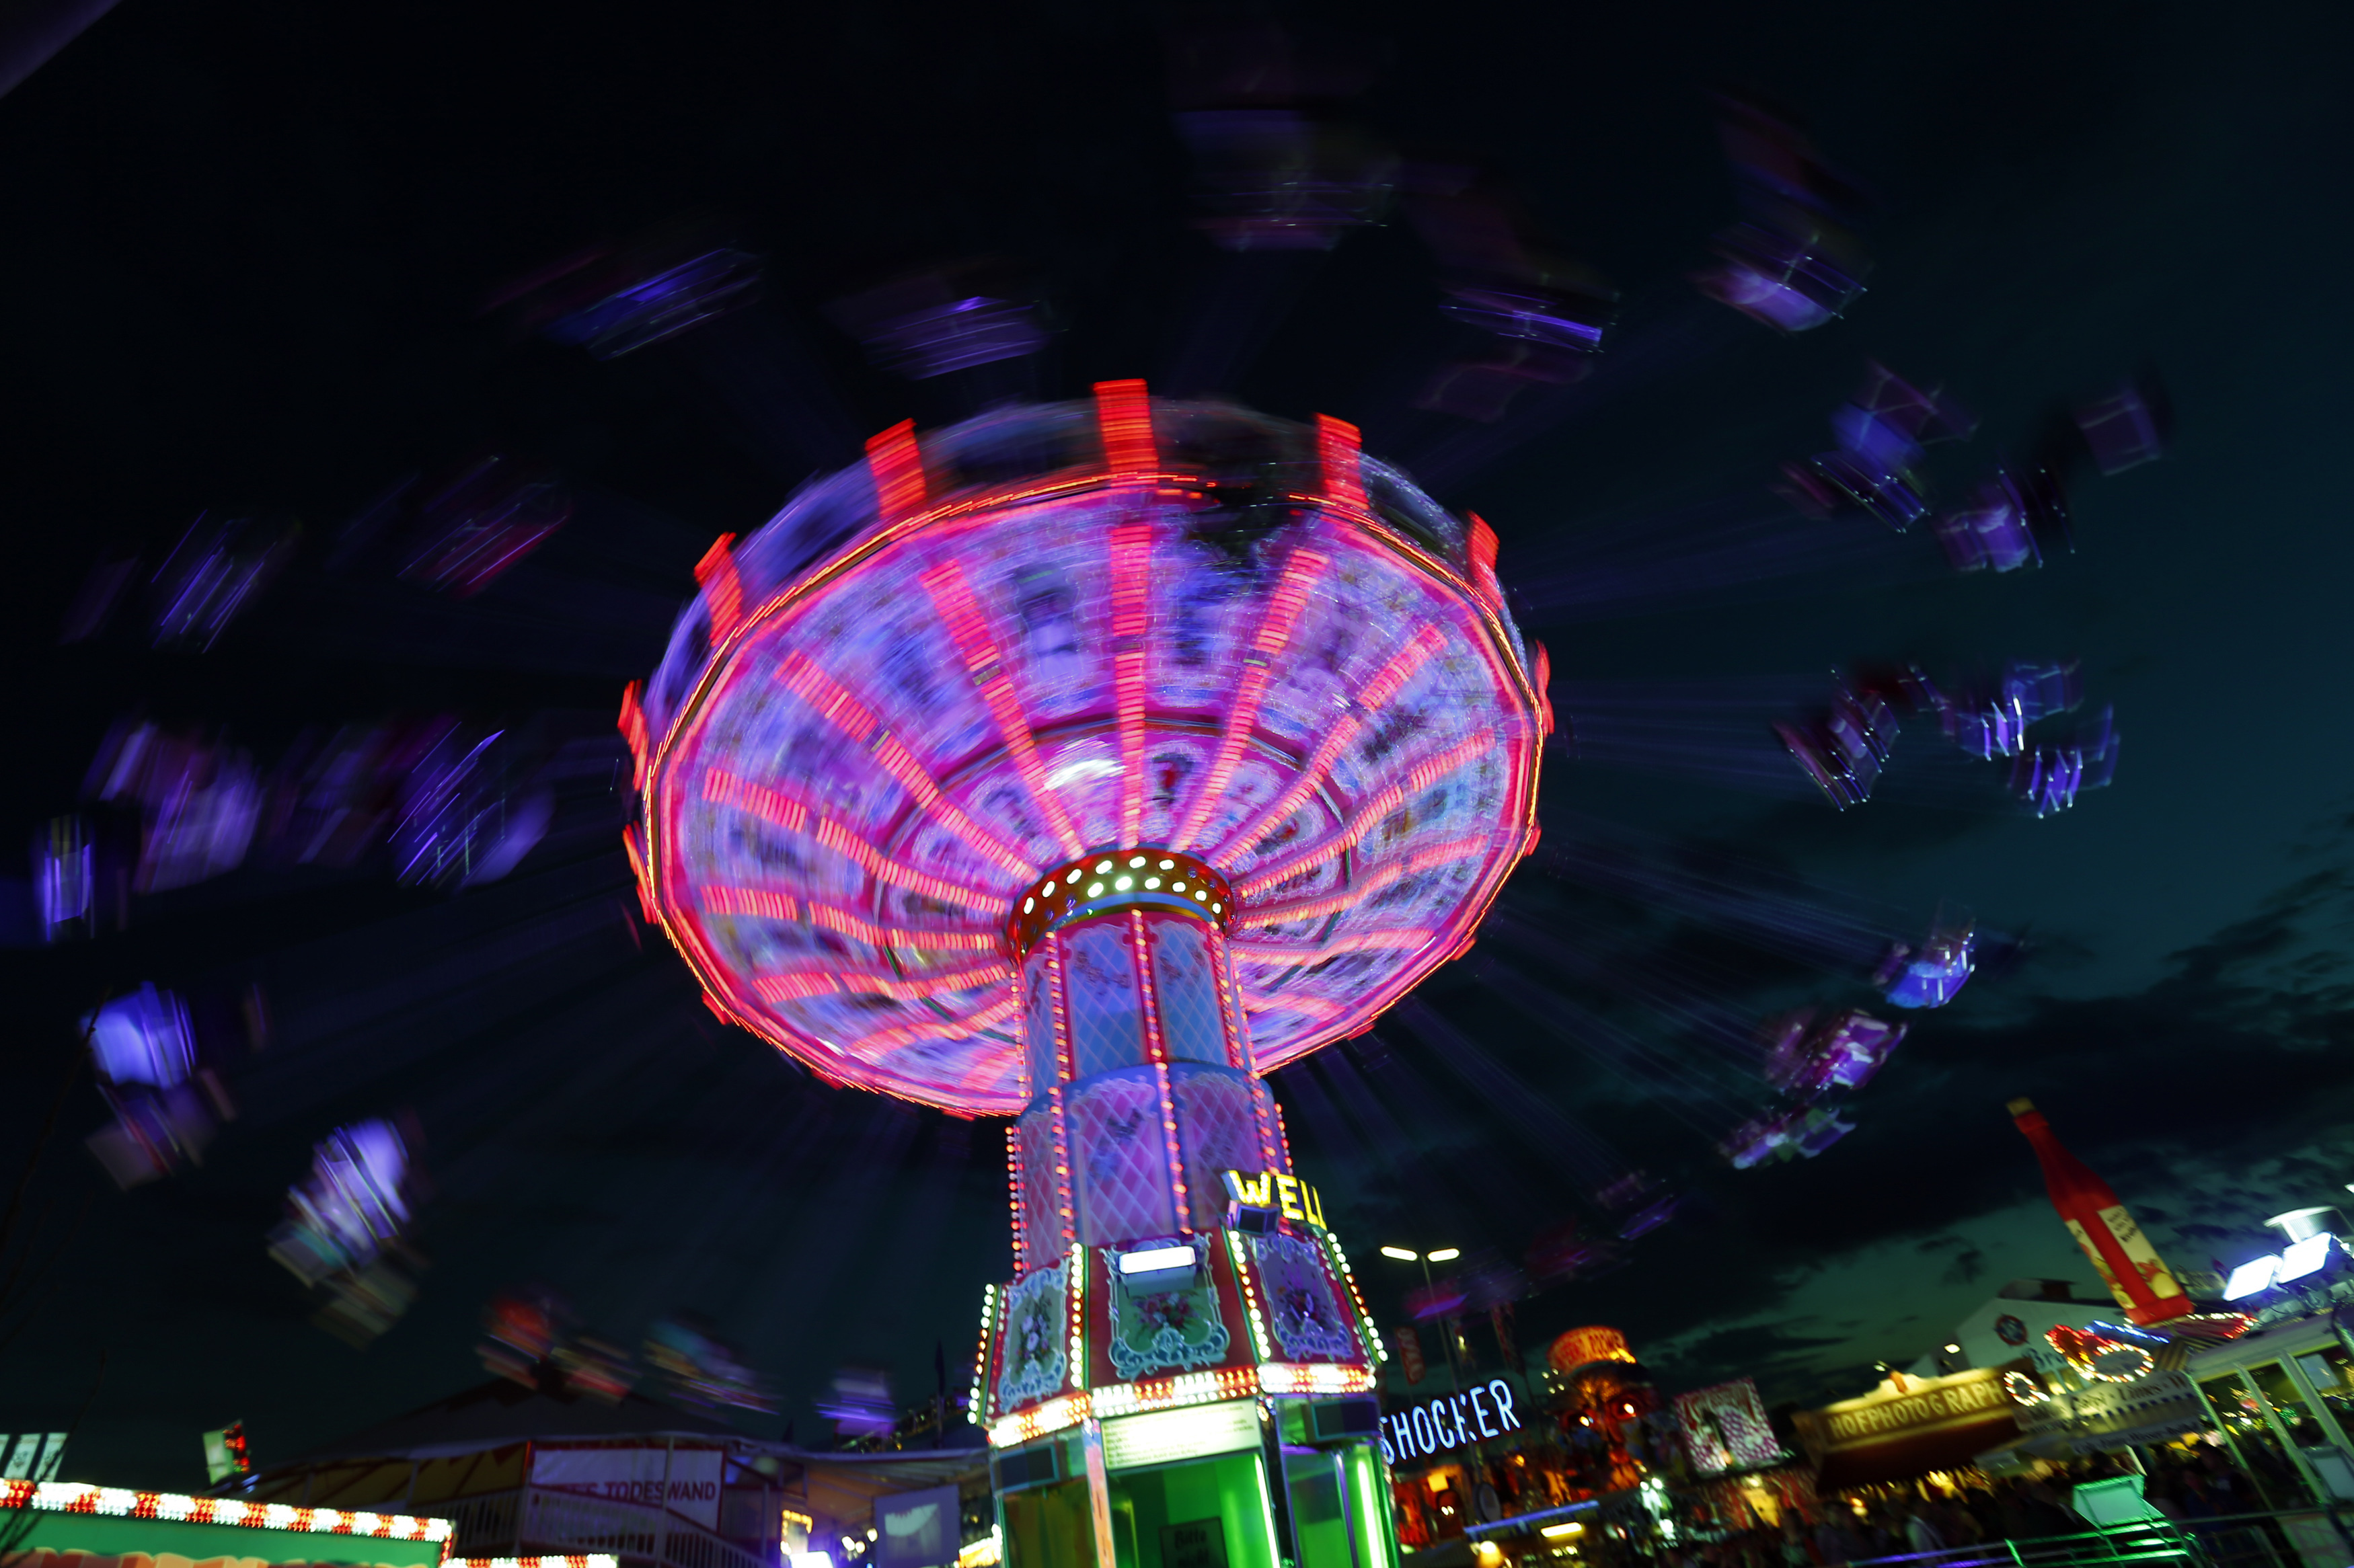 Visitors ride a merry-go-round during the opening day of the Oktoberfest in Munich